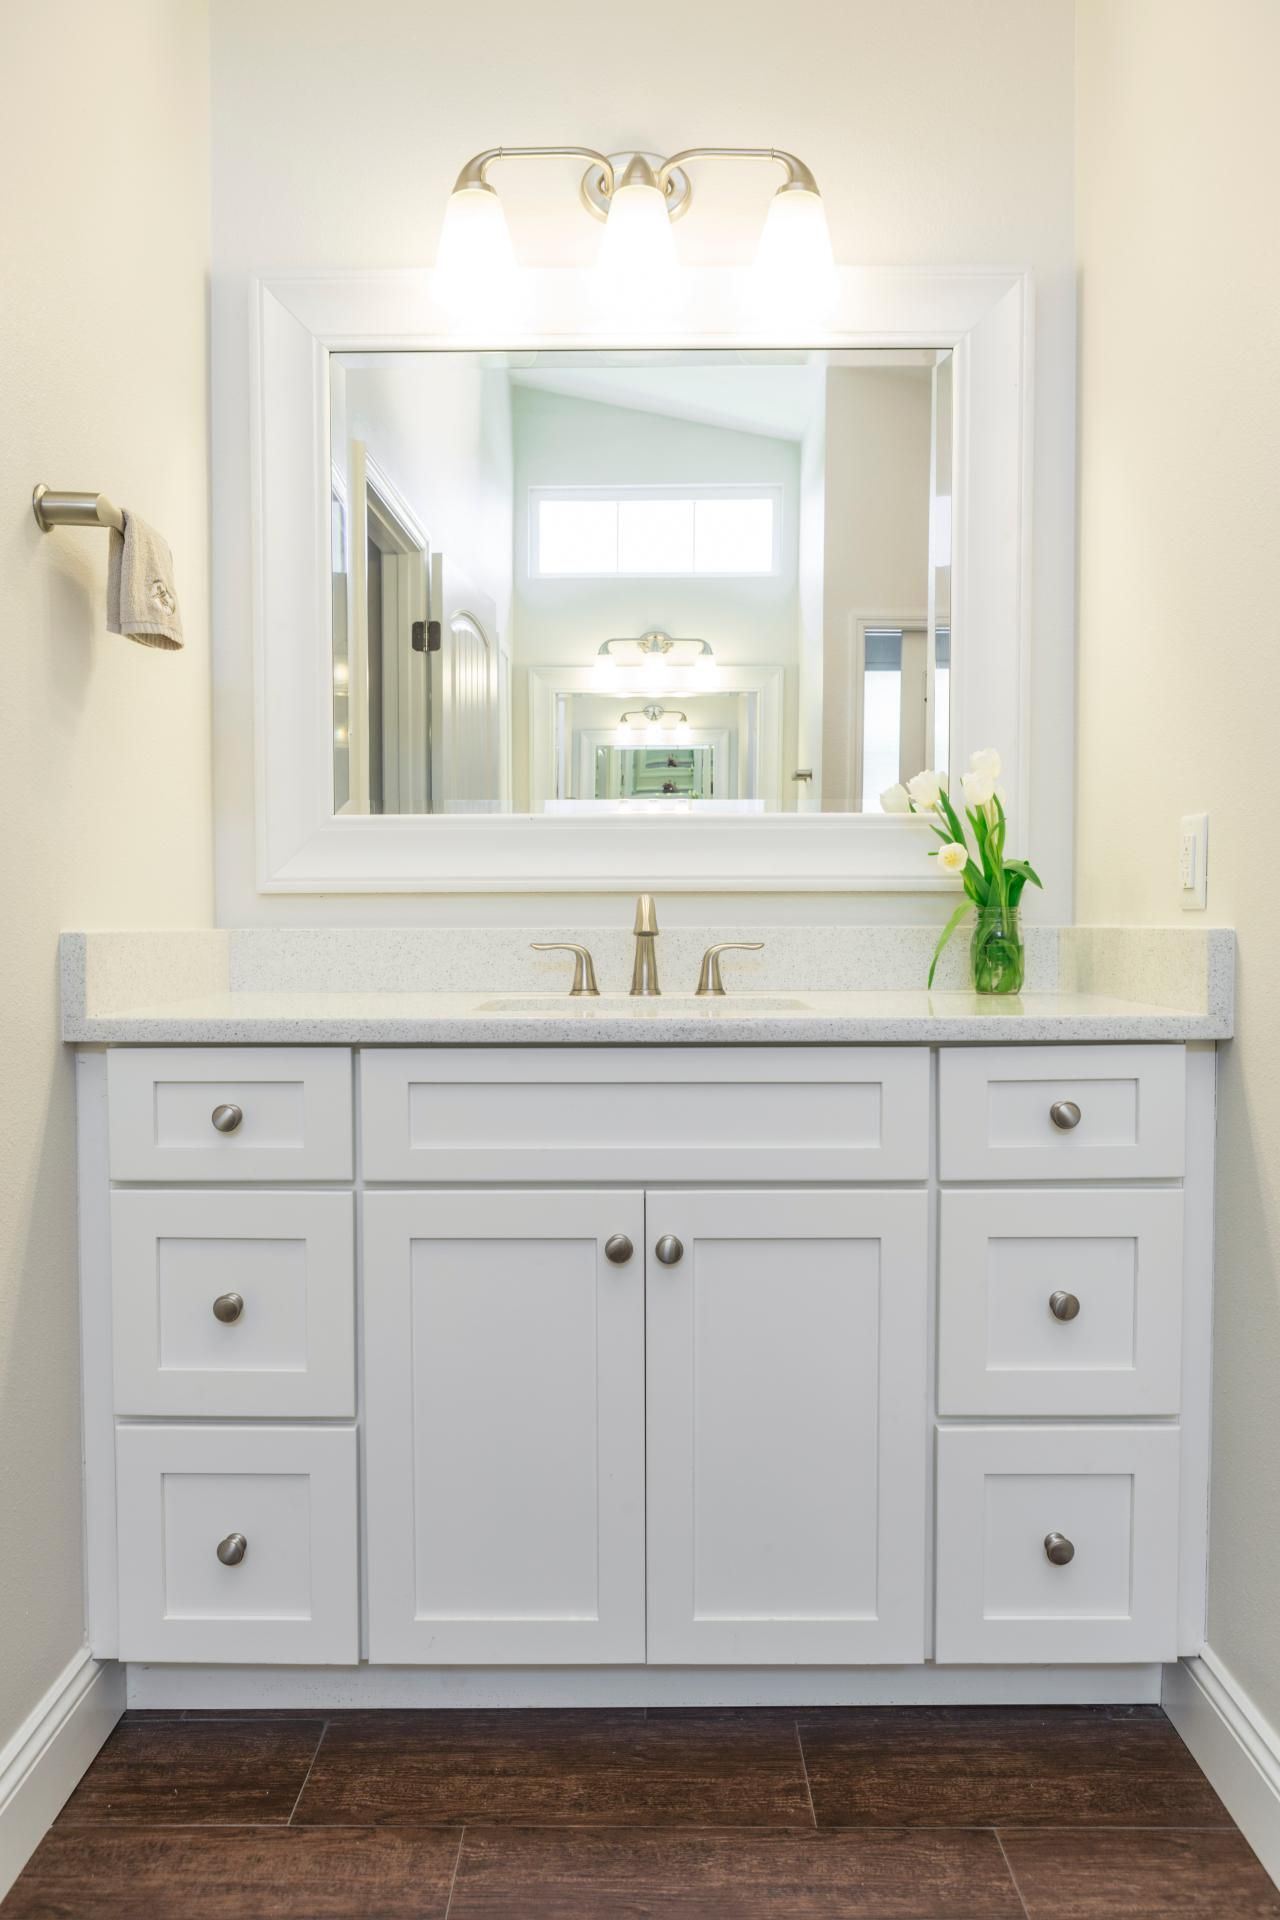 white shaker bathroom vanity. HGTV Invites You To Peek Inside This Transitional Bathroom With A Crisp White Vanity, Quartz Countertops And Wood-look Tile Floors. Shaker Vanity T